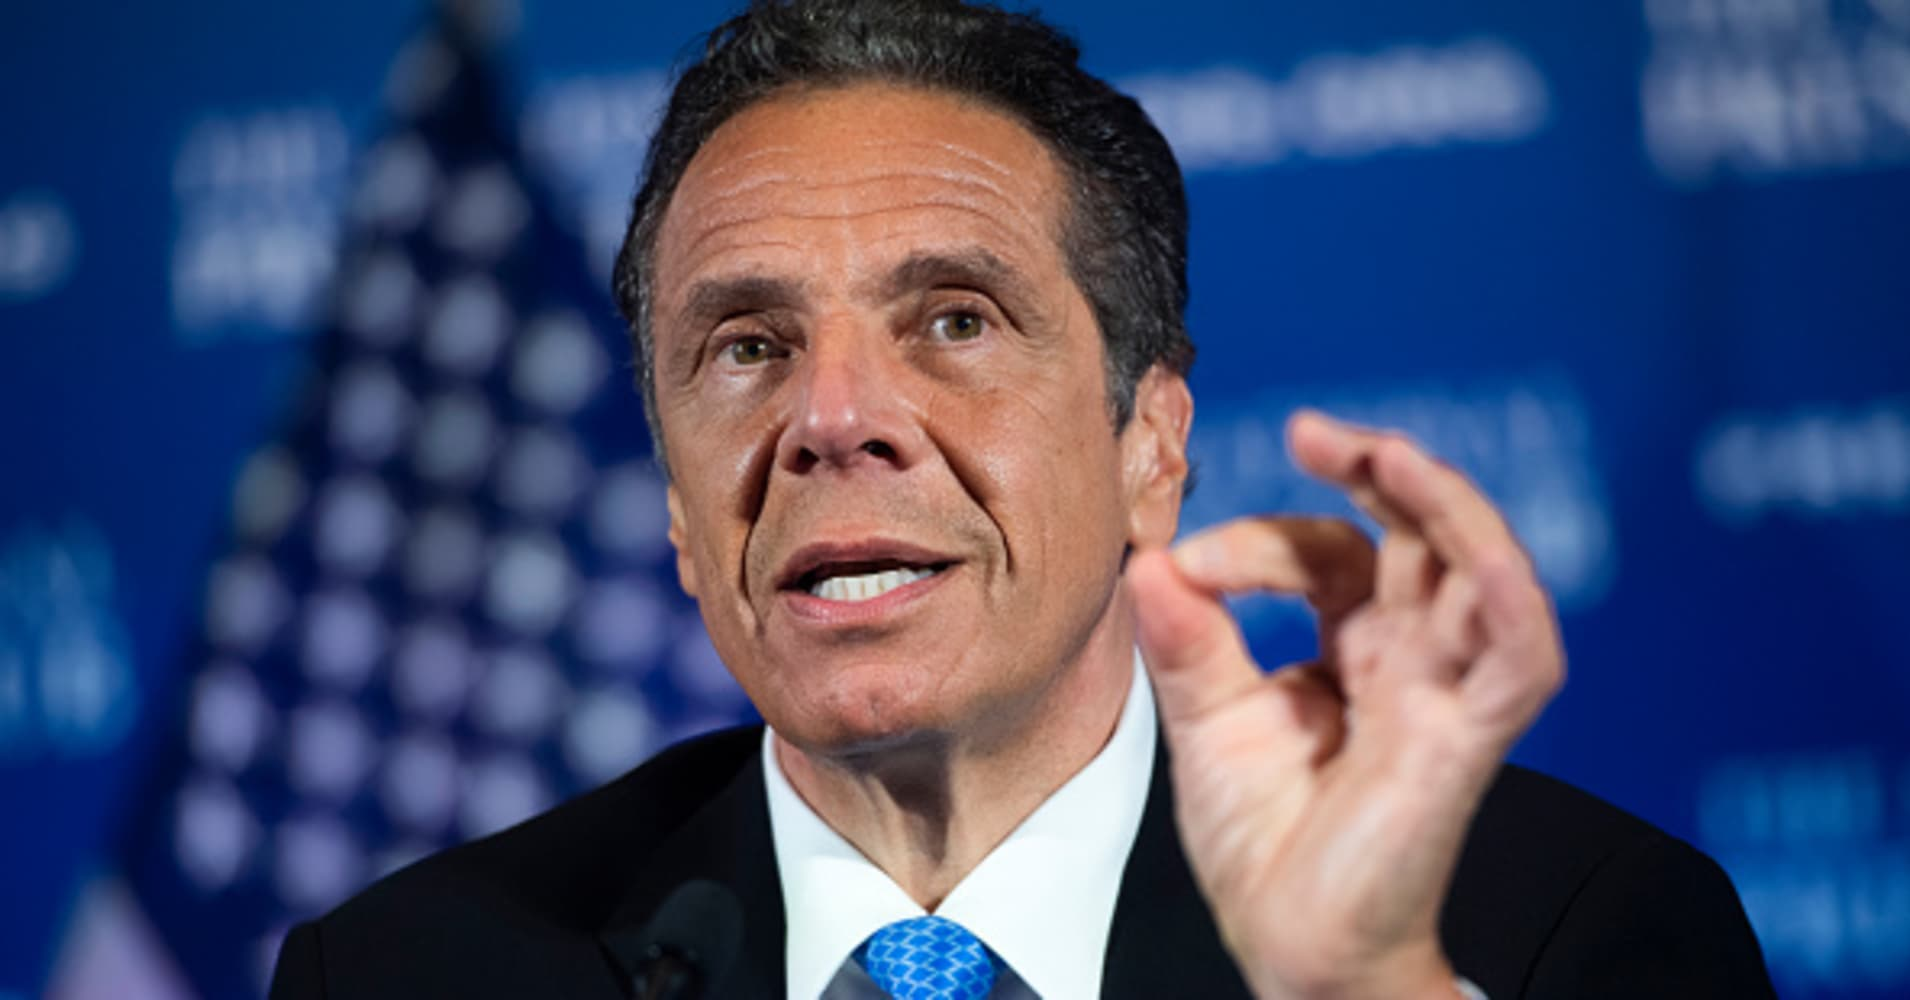 Watch live: New York Gov. Andrew Cuomo holds a press conference on the coronavirus outbreak